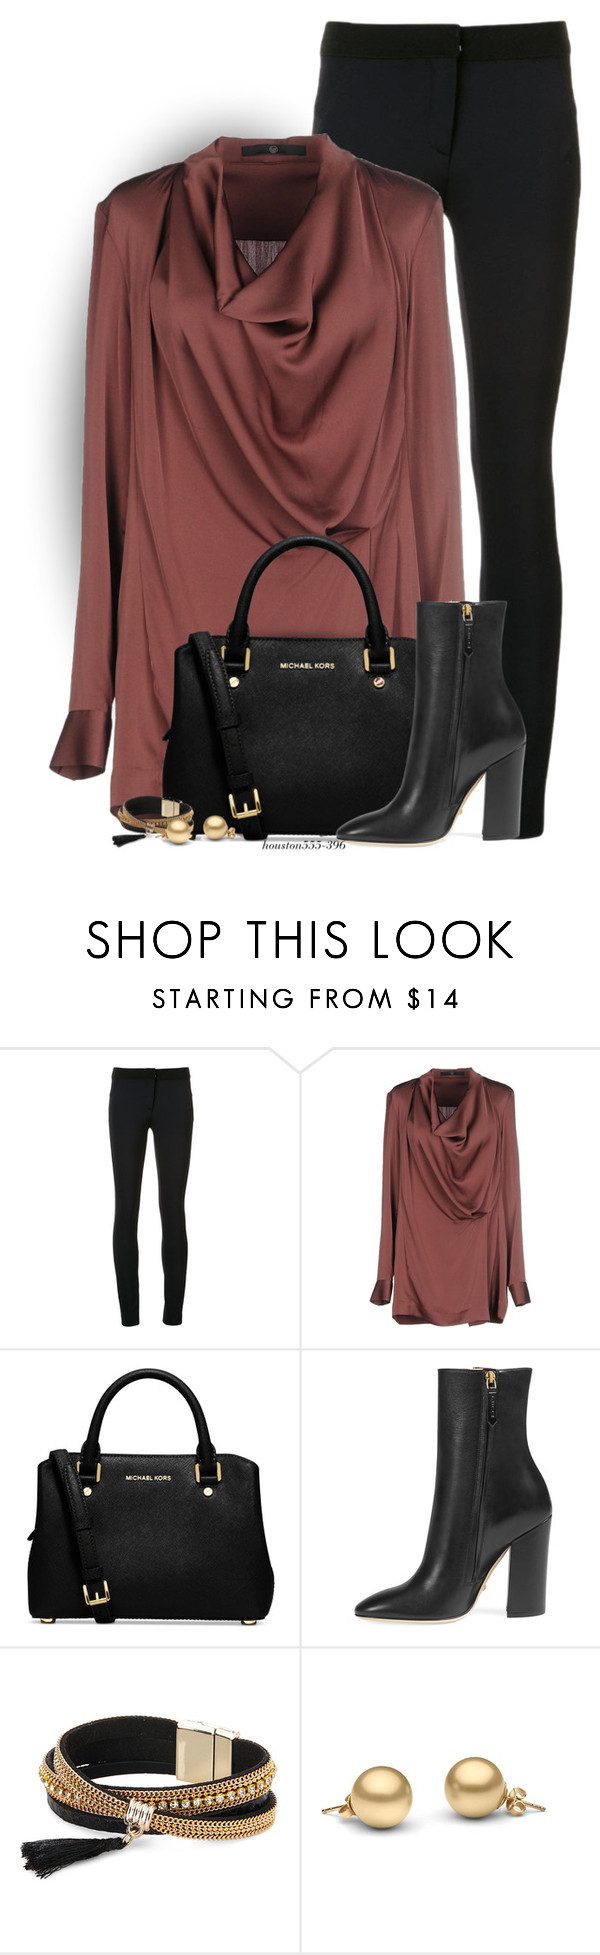 """""""Drape Neck Blouse"""" by houston555-396 ❤ liked on Polyvore featuring Veronica Beard, SLY 010, Michael Kors, Gucci and Simons"""